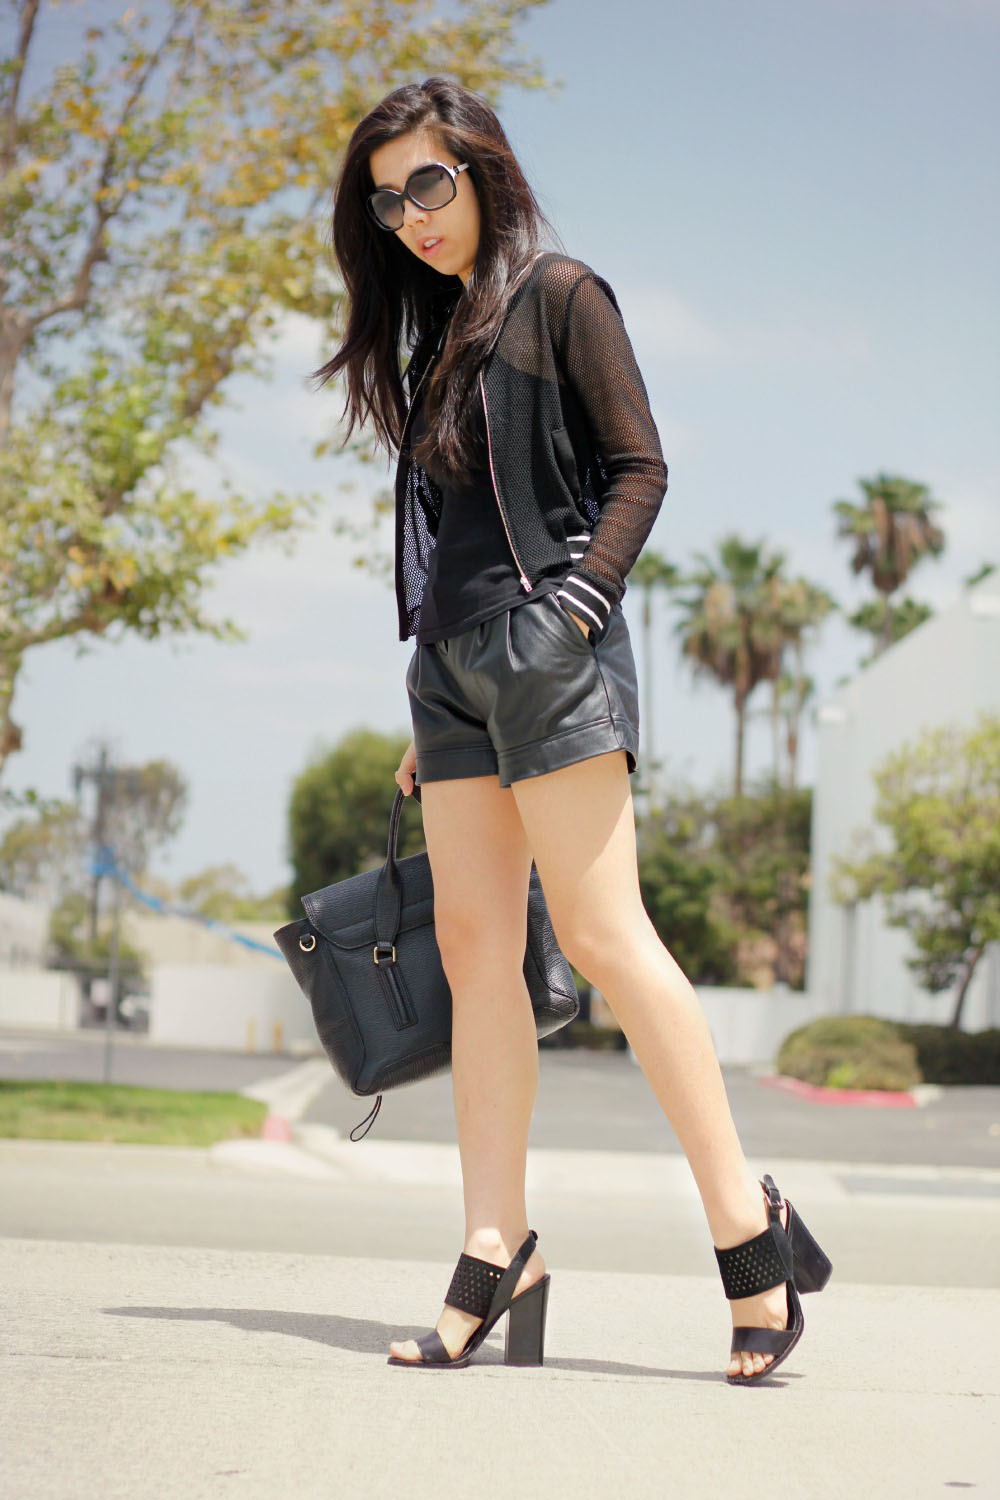 Black Leather Shorts and a bomber